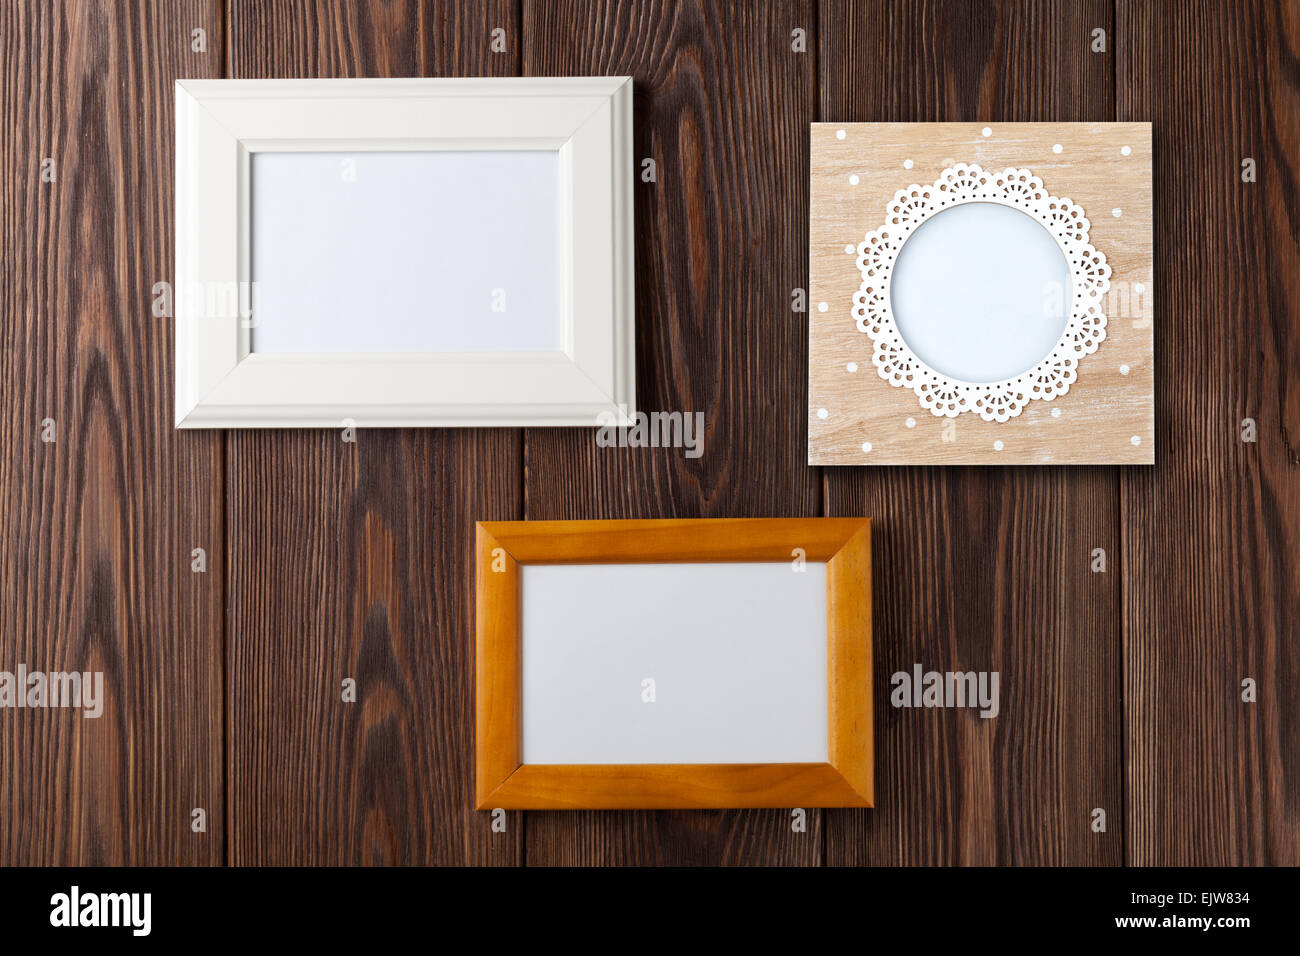 Photo frames on wooden wall with copy space - Stock Image